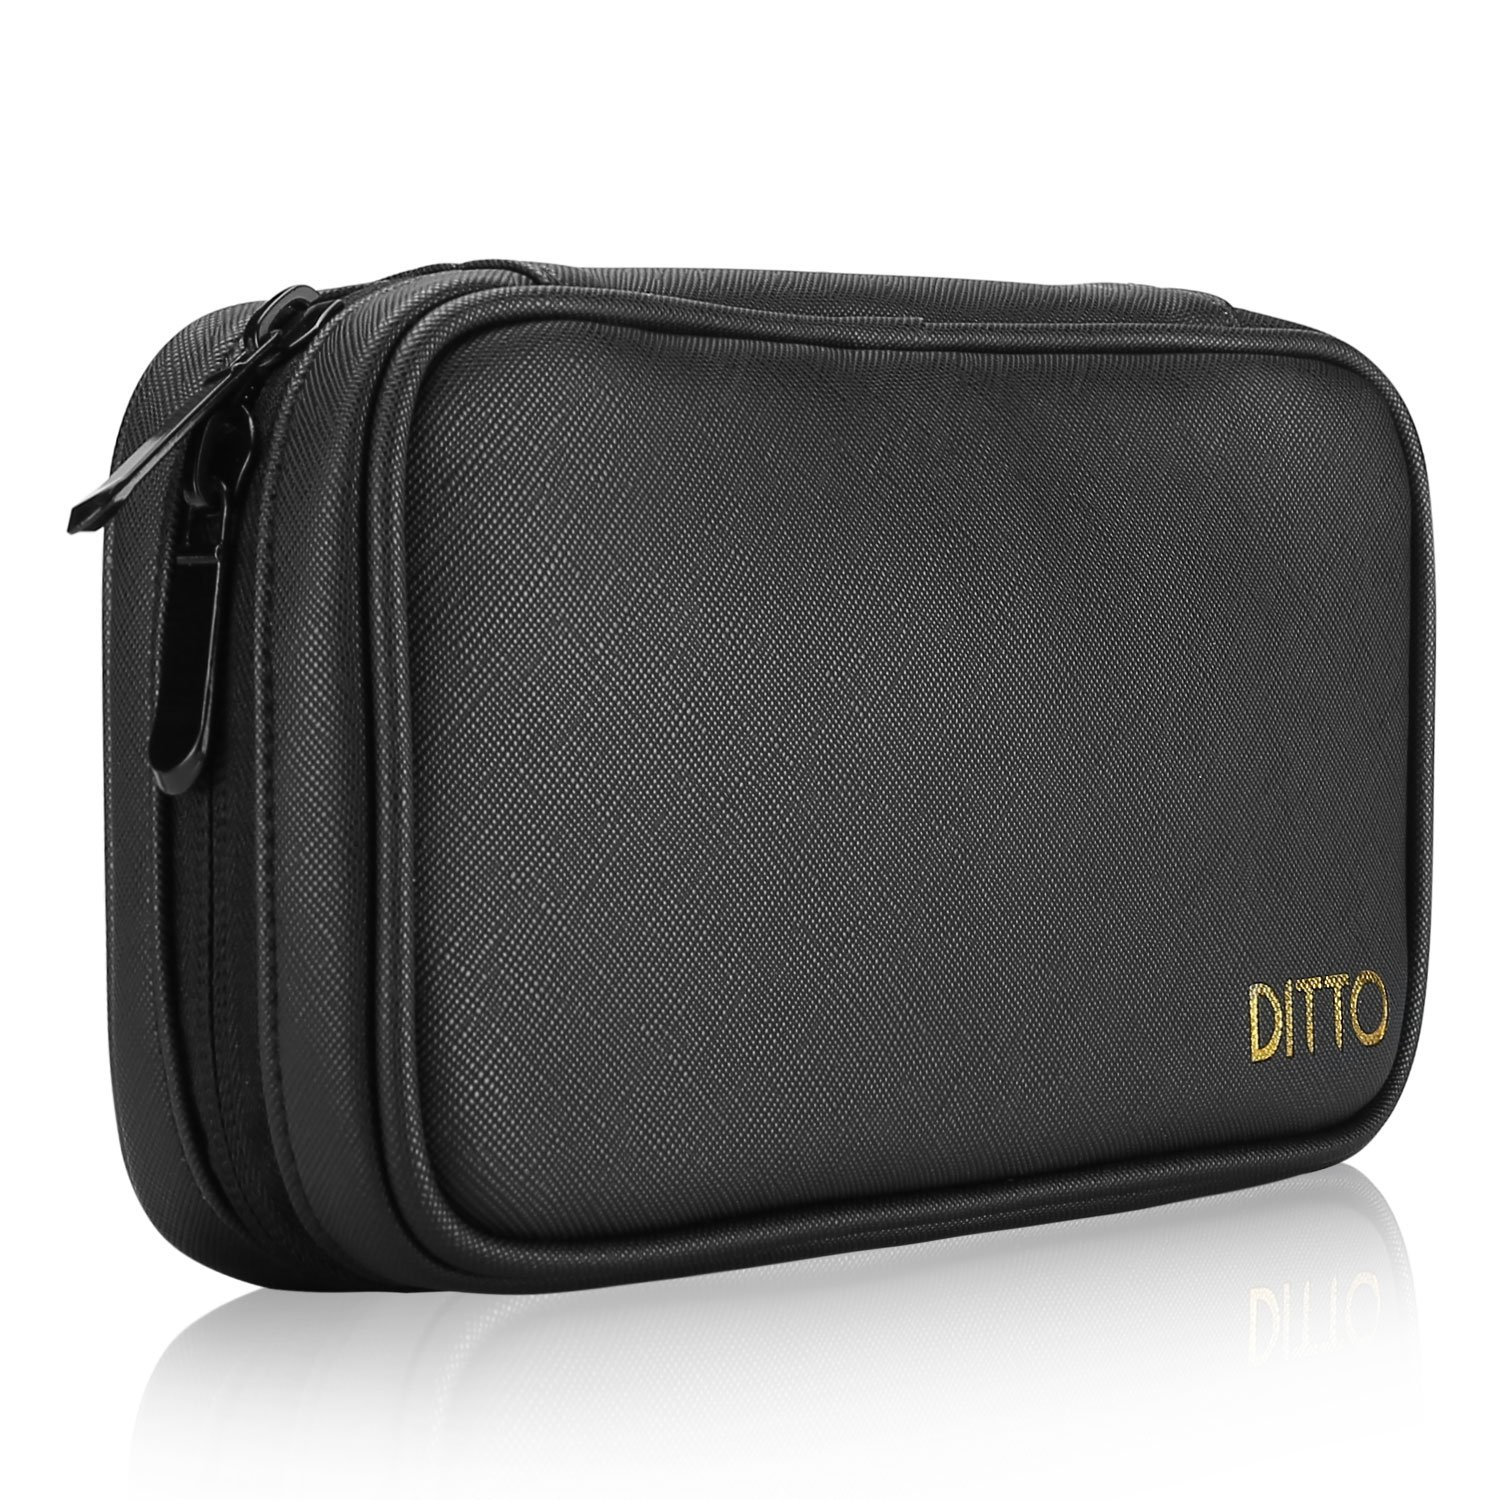 Ditto Large Pencil Case, Stationery Pouch Multi-Functional Pencil Pouch Holder Large Capacity Pen Bag Stationery Case with Mesh Pockets for Pen Markers Eraser Texas Instruments TI-84 / Plus -Black